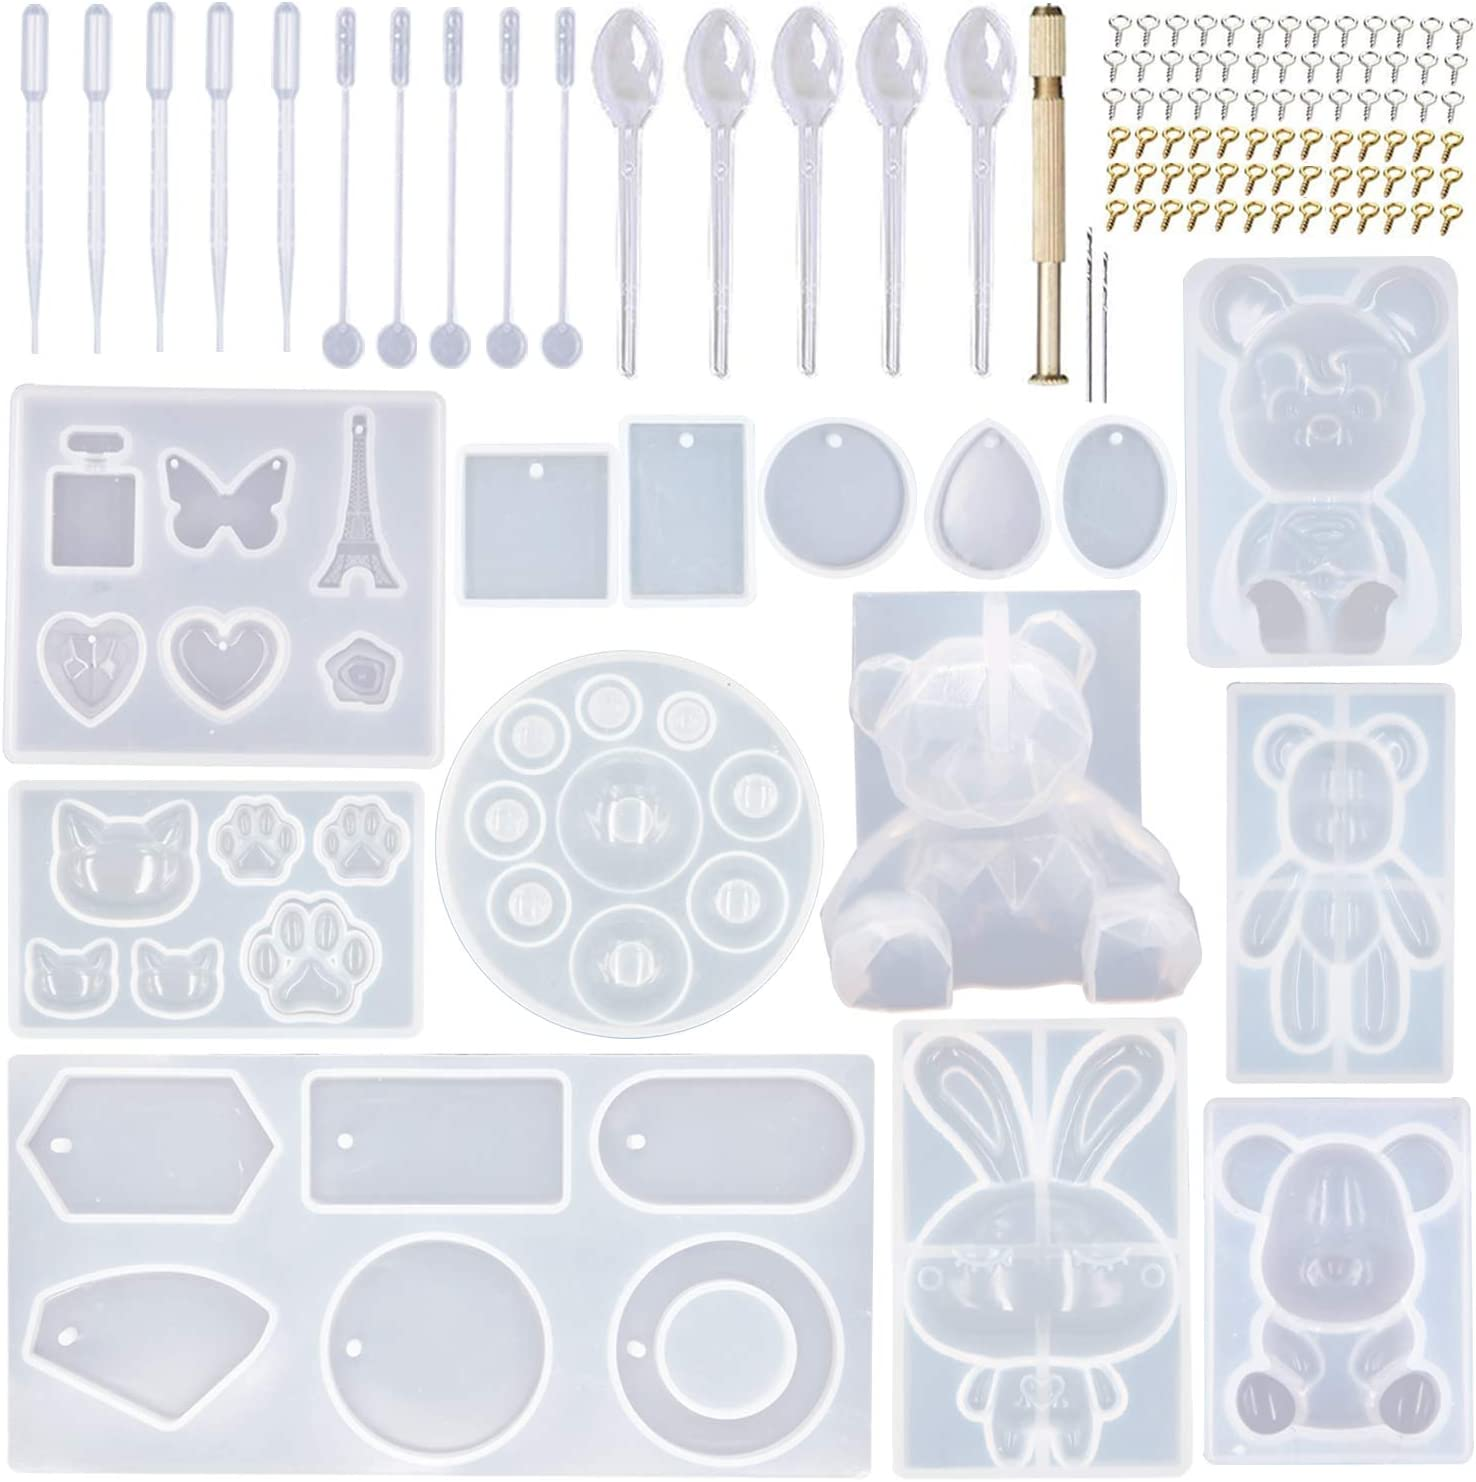 Chain Rabbit Pendant Silicone Mold Jewelry Making Tools UV Epoxy Resin Mould